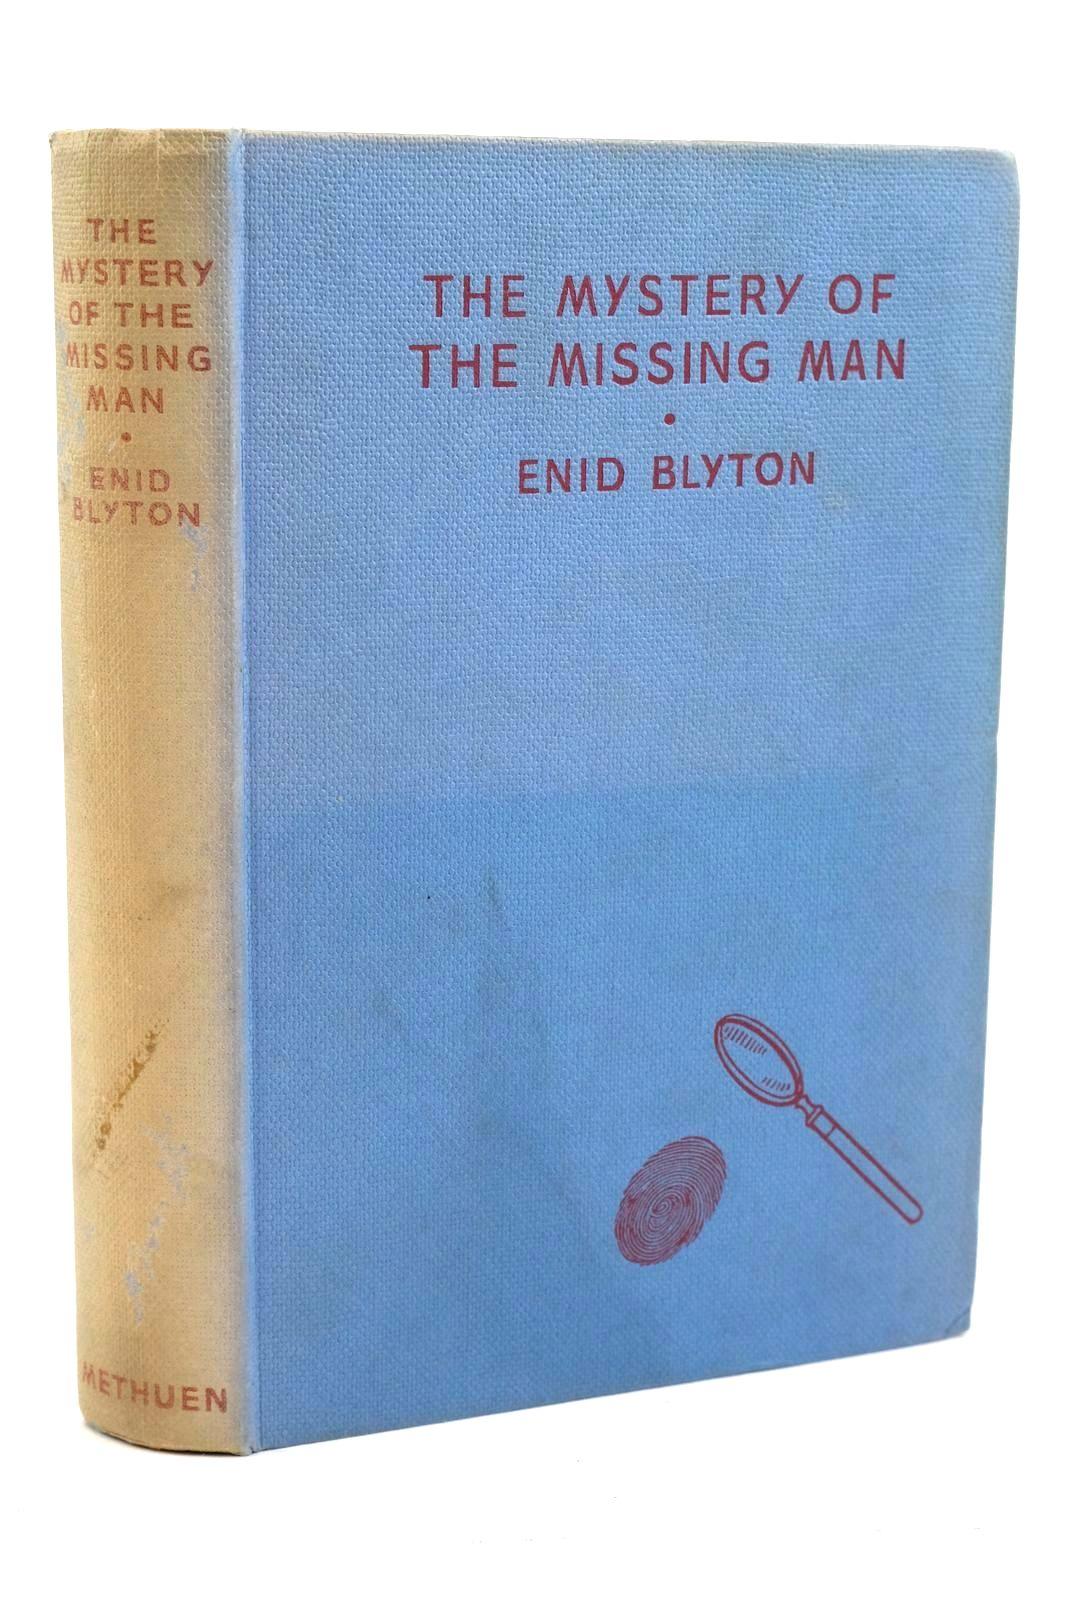 Photo of THE MYSTERY OF THE MISSING MAN written by Blyton, Enid illustrated by Buchanan, Lilian published by Methuen & Co. Ltd. (STOCK CODE: 1320748)  for sale by Stella & Rose's Books